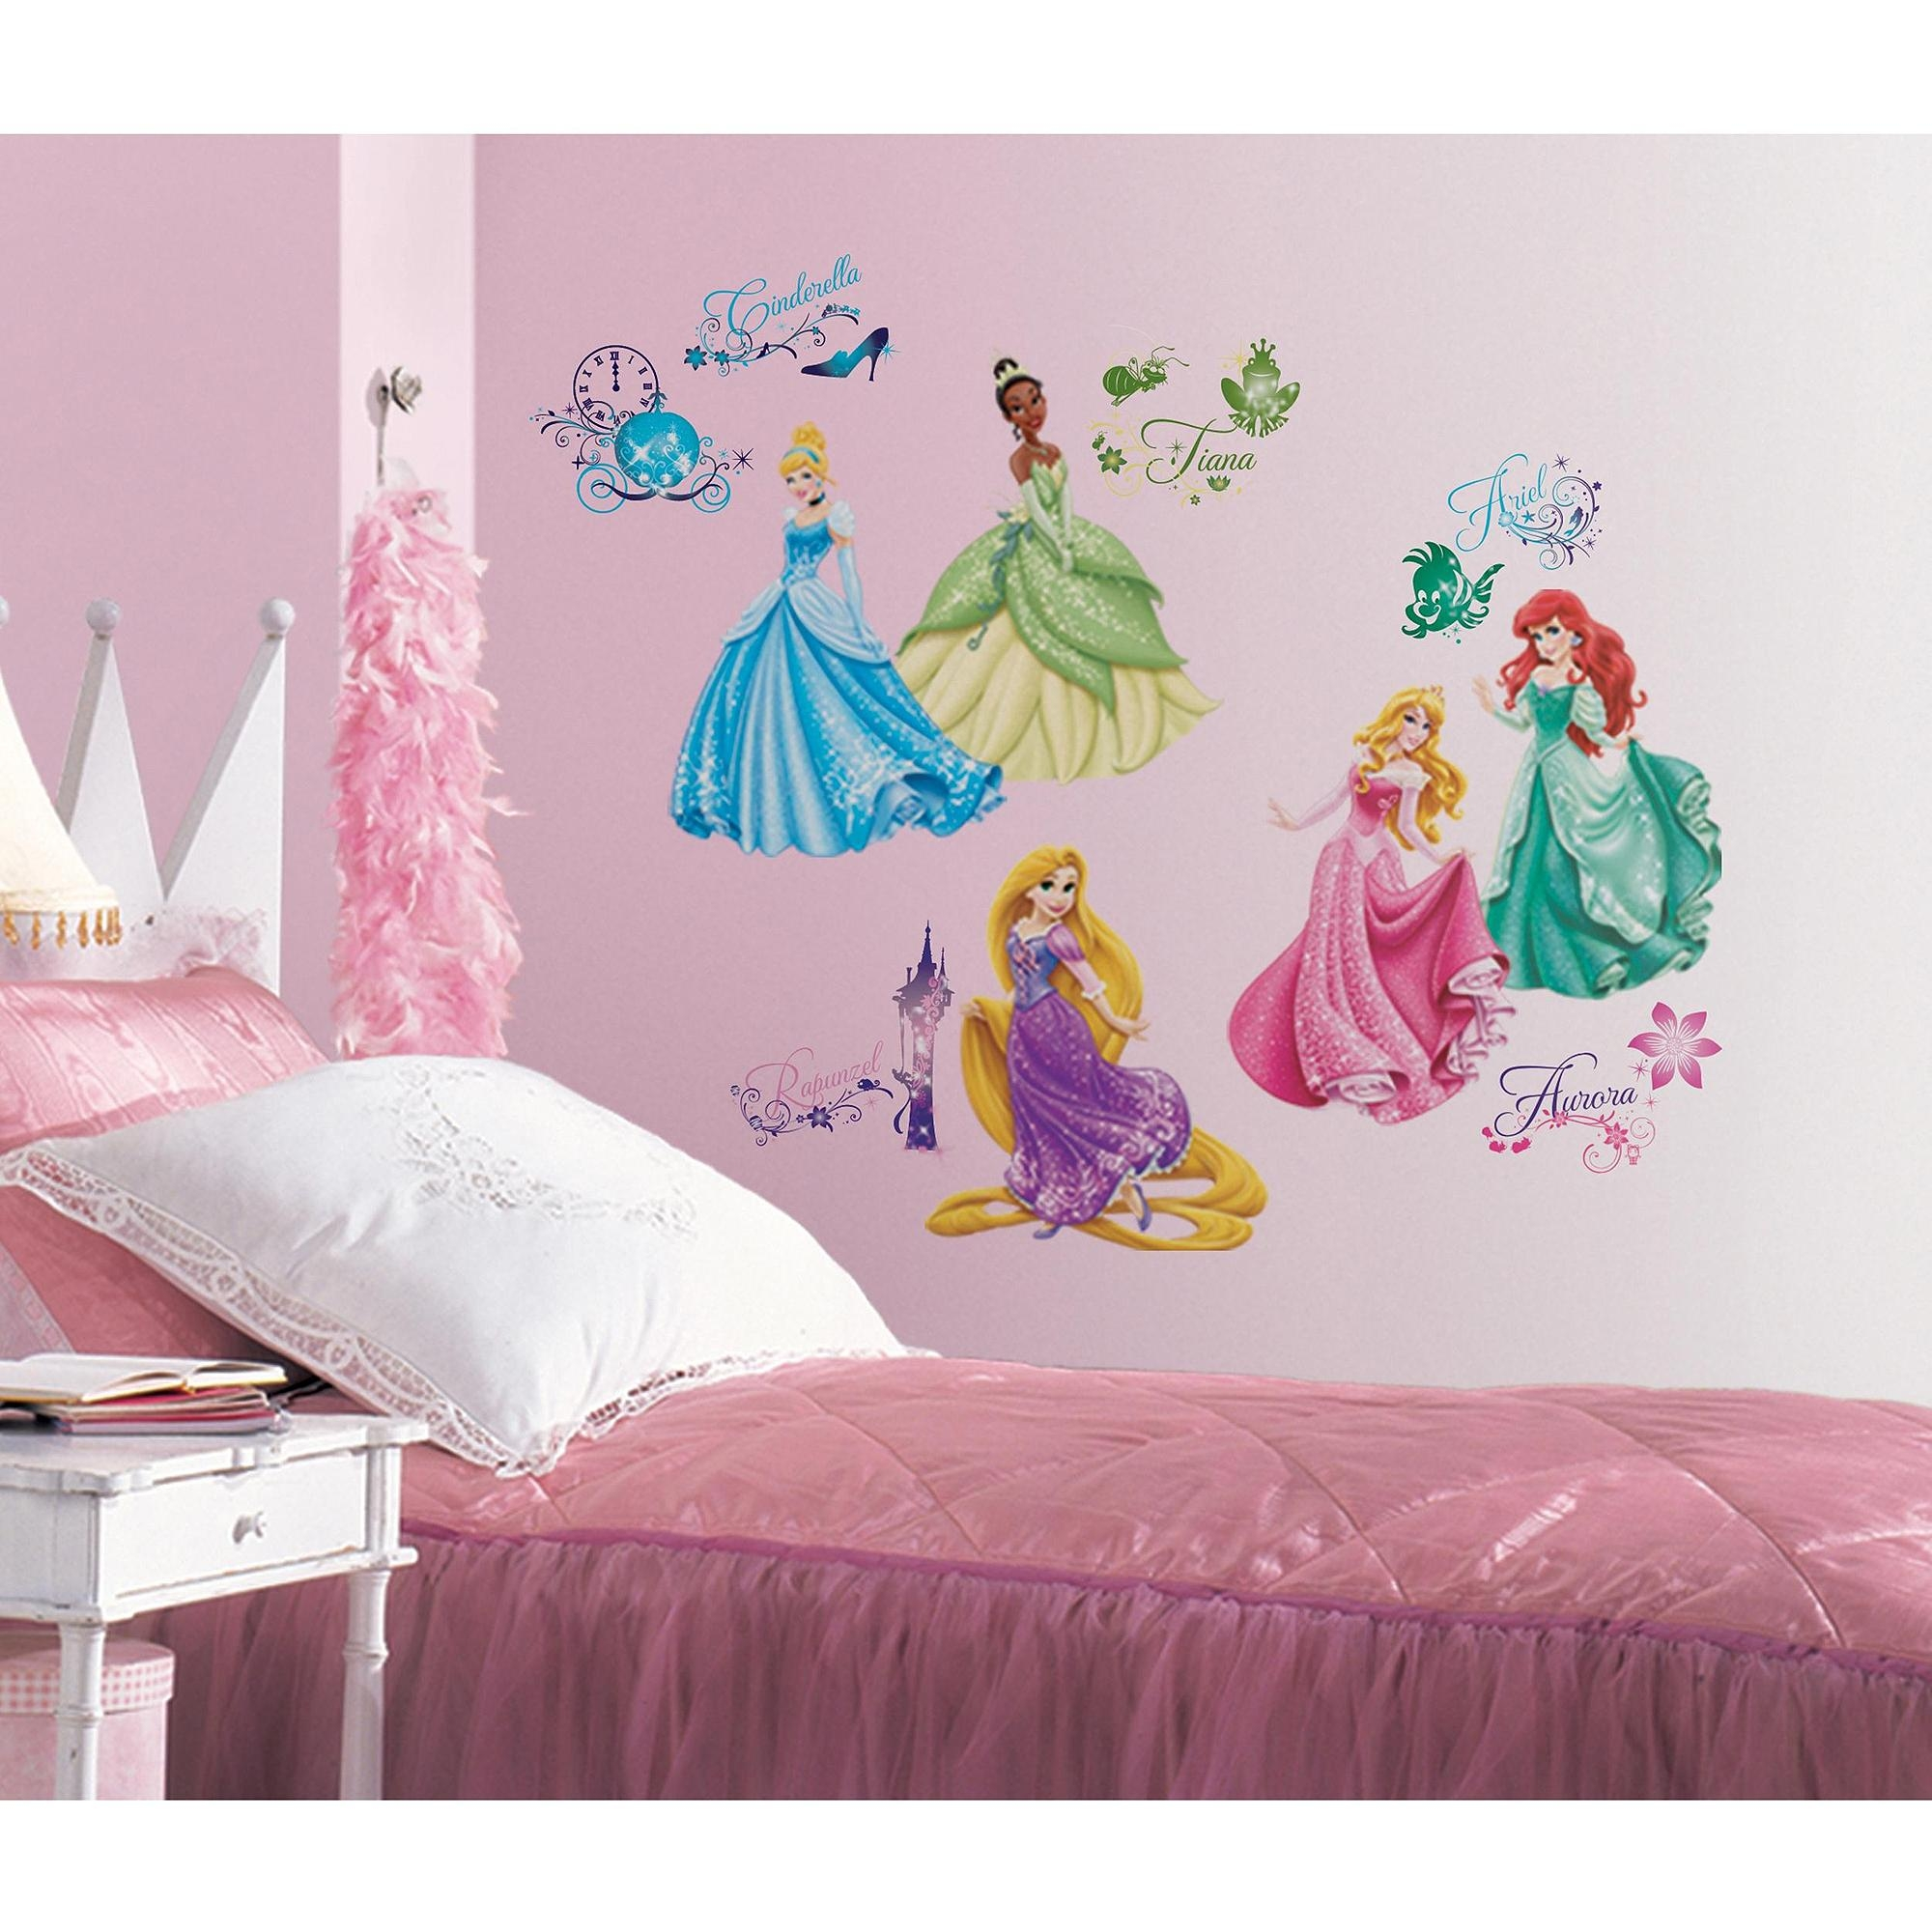 Disney Princess Royal Debut Peel And Stick Wall Decals – Walmart In Preschool Classroom Wall Decals (View 13 of 20)